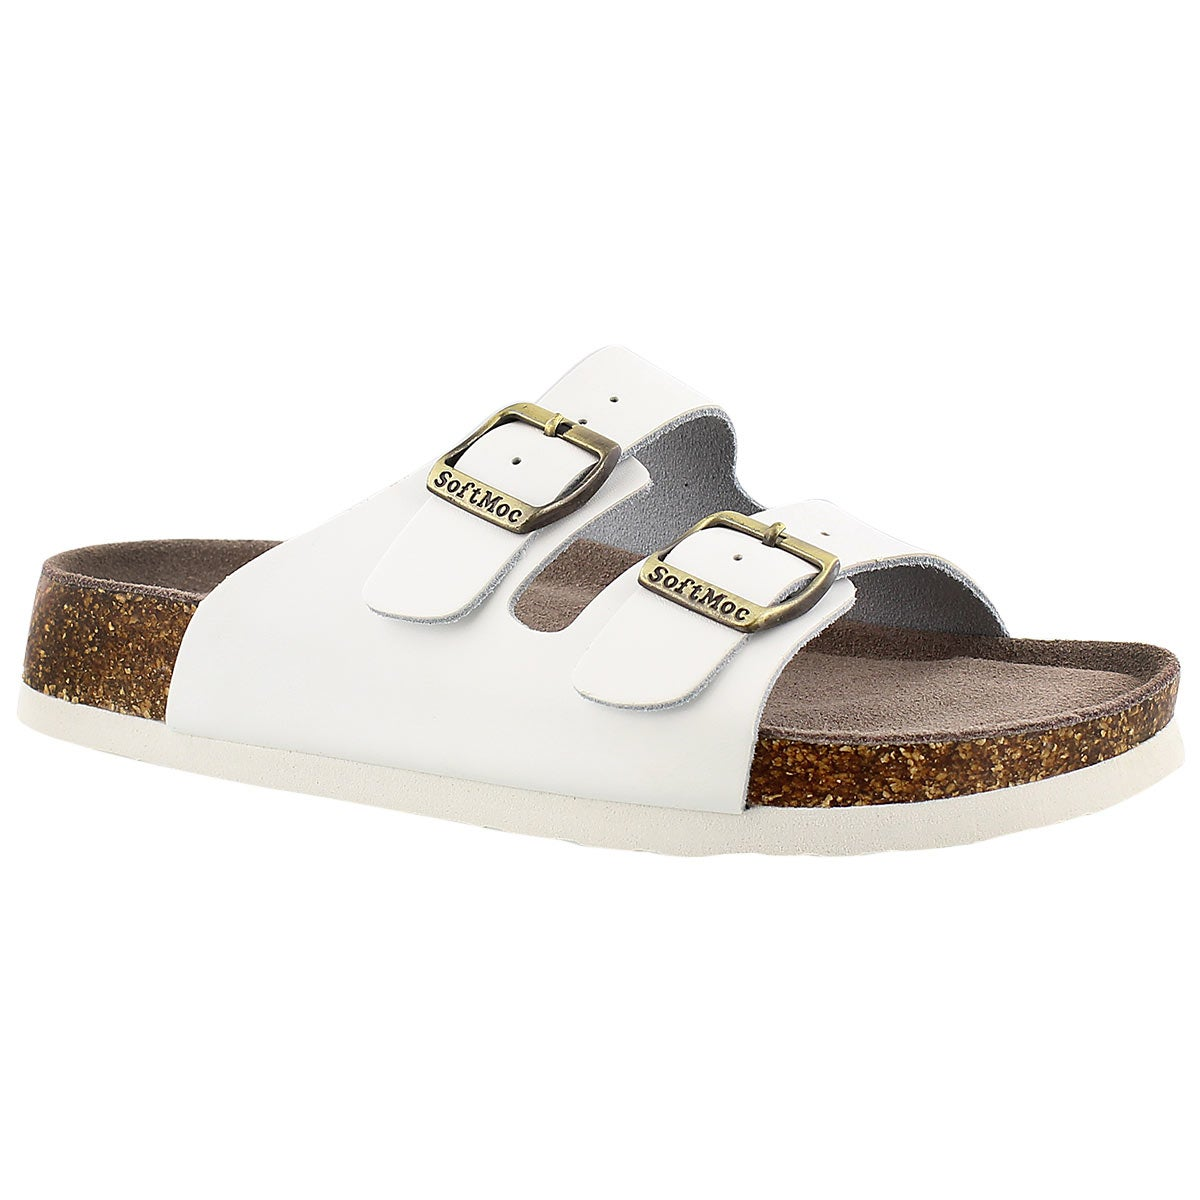 Women's ANNA 3 white memory foam footbed sandals